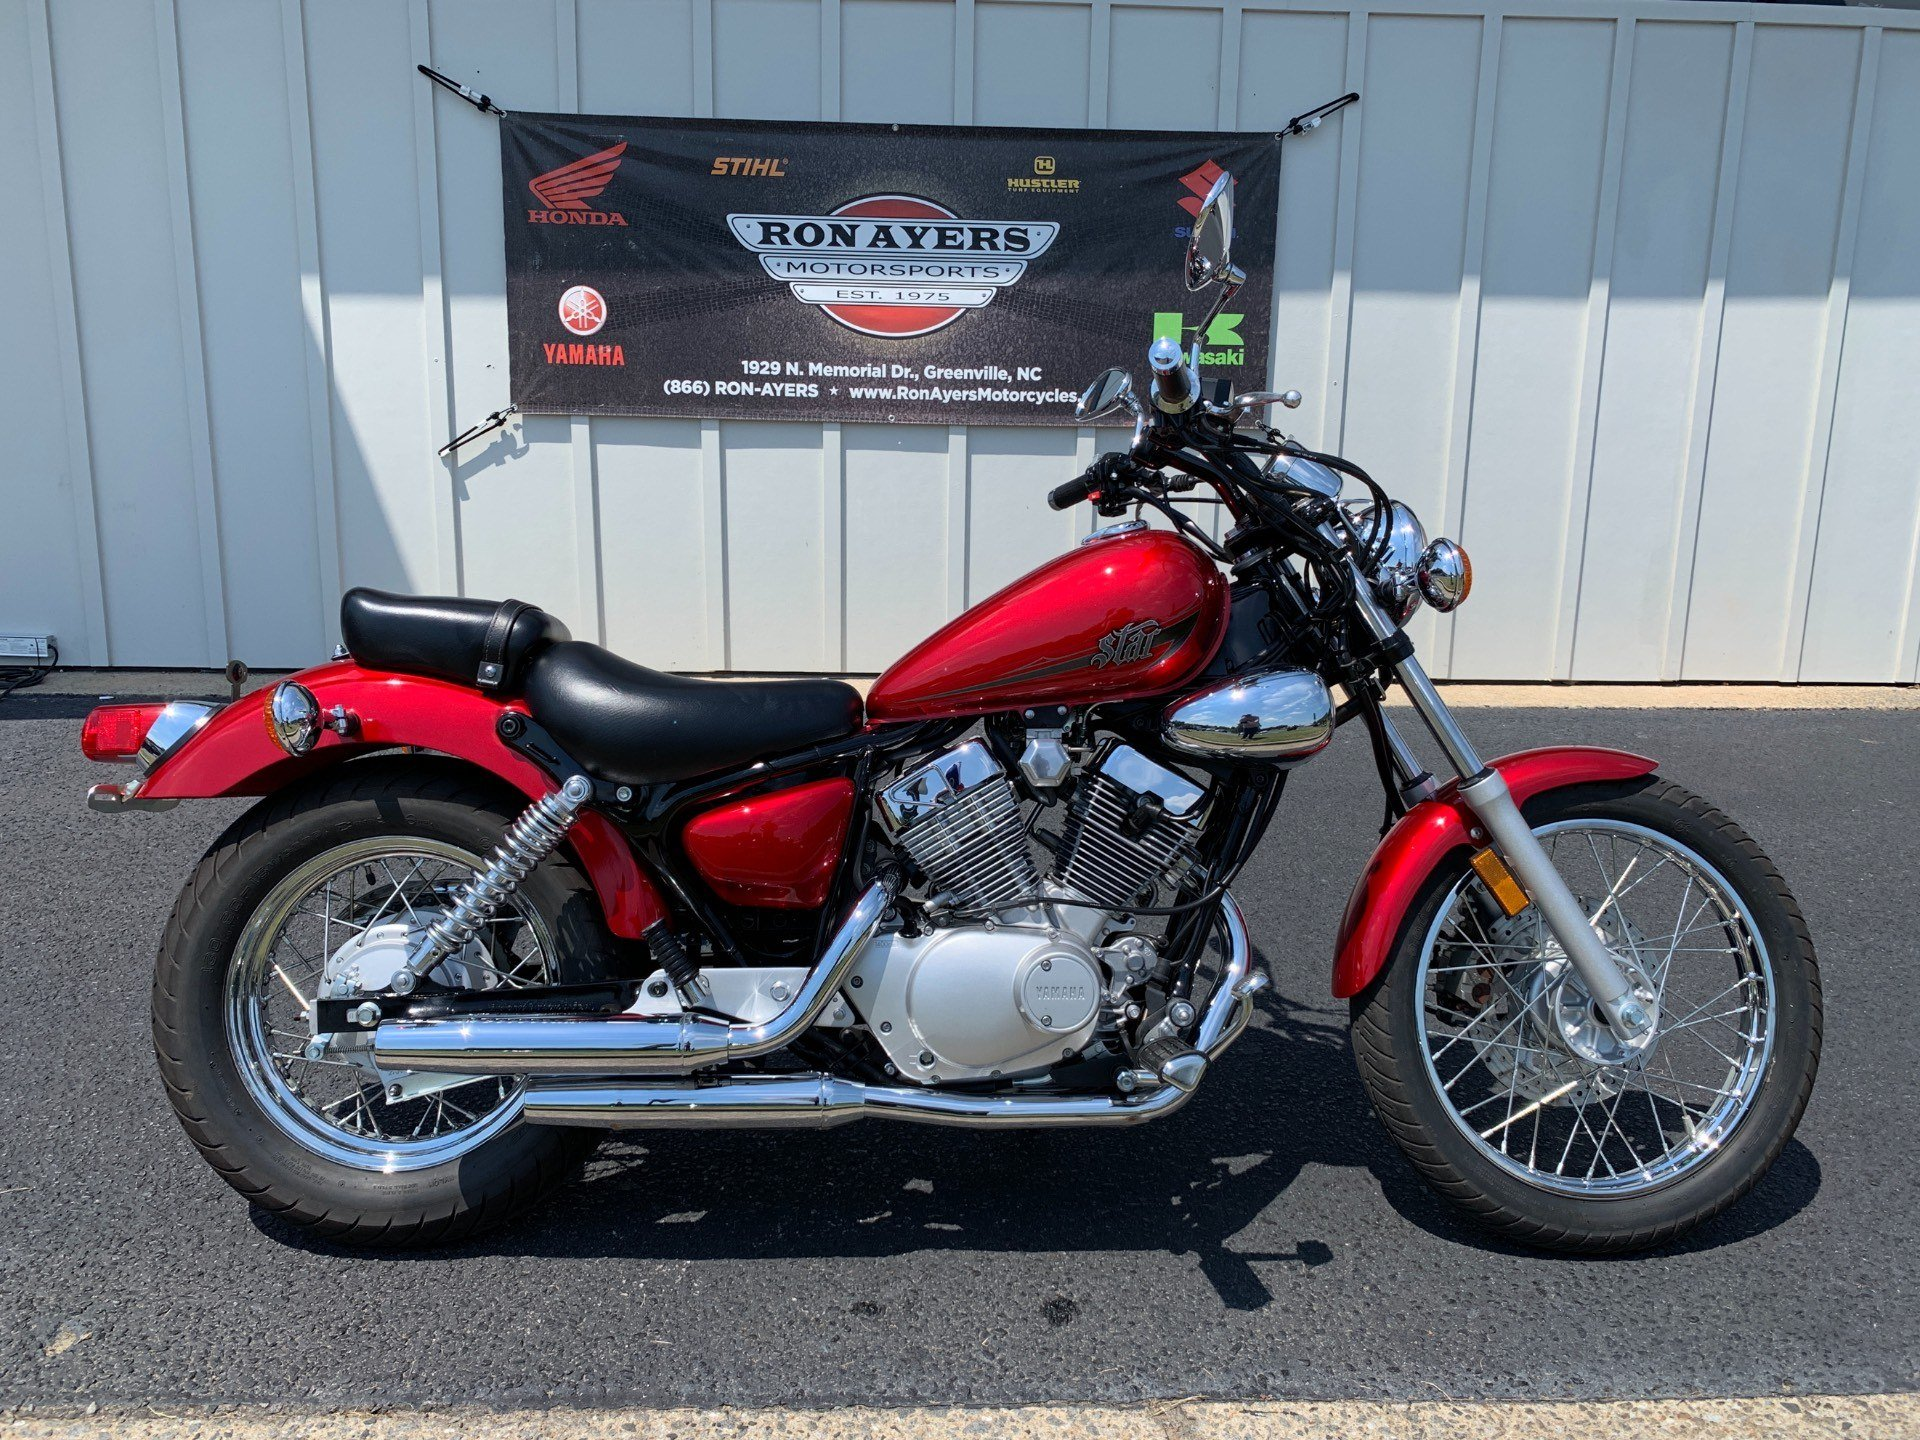 2014 Yamaha V Star 250 in Greenville, North Carolina - Photo 1